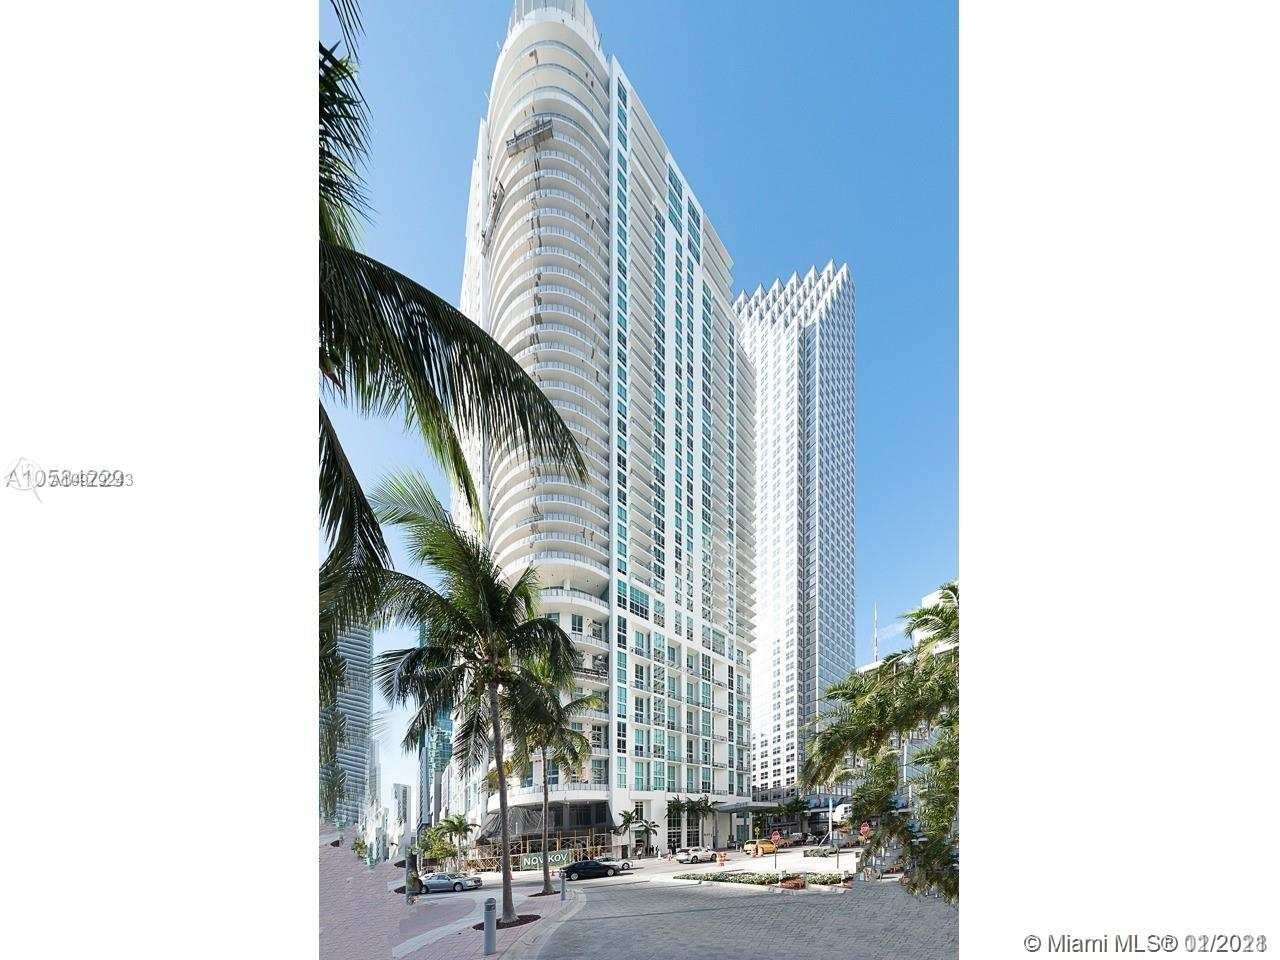 Two story loft unit at Met1 Tower in Downtown Miami - 1Bed/1.5Baths + Den with gorgeous views of water and skyline. Open concept kitchen, Italian cabinetry, granite countertops, SS appliances and washer/dryer. Extra storage space. Enjoy water and city views from your ample balcony. Assigned parking space on the same floor -  don't have to enter through the lobby! Pet friendly building. Impact windows and sliding glass doors designed to meet hurricane codes. The Met 1Tower offers high security and top of the line amenities with lobby and valet service, pool & spa, fitness center with stunning water view, game room and more. Water, cable & Internet included. Walk to Metromover, Whole Foods, shops, movies & restaurants.